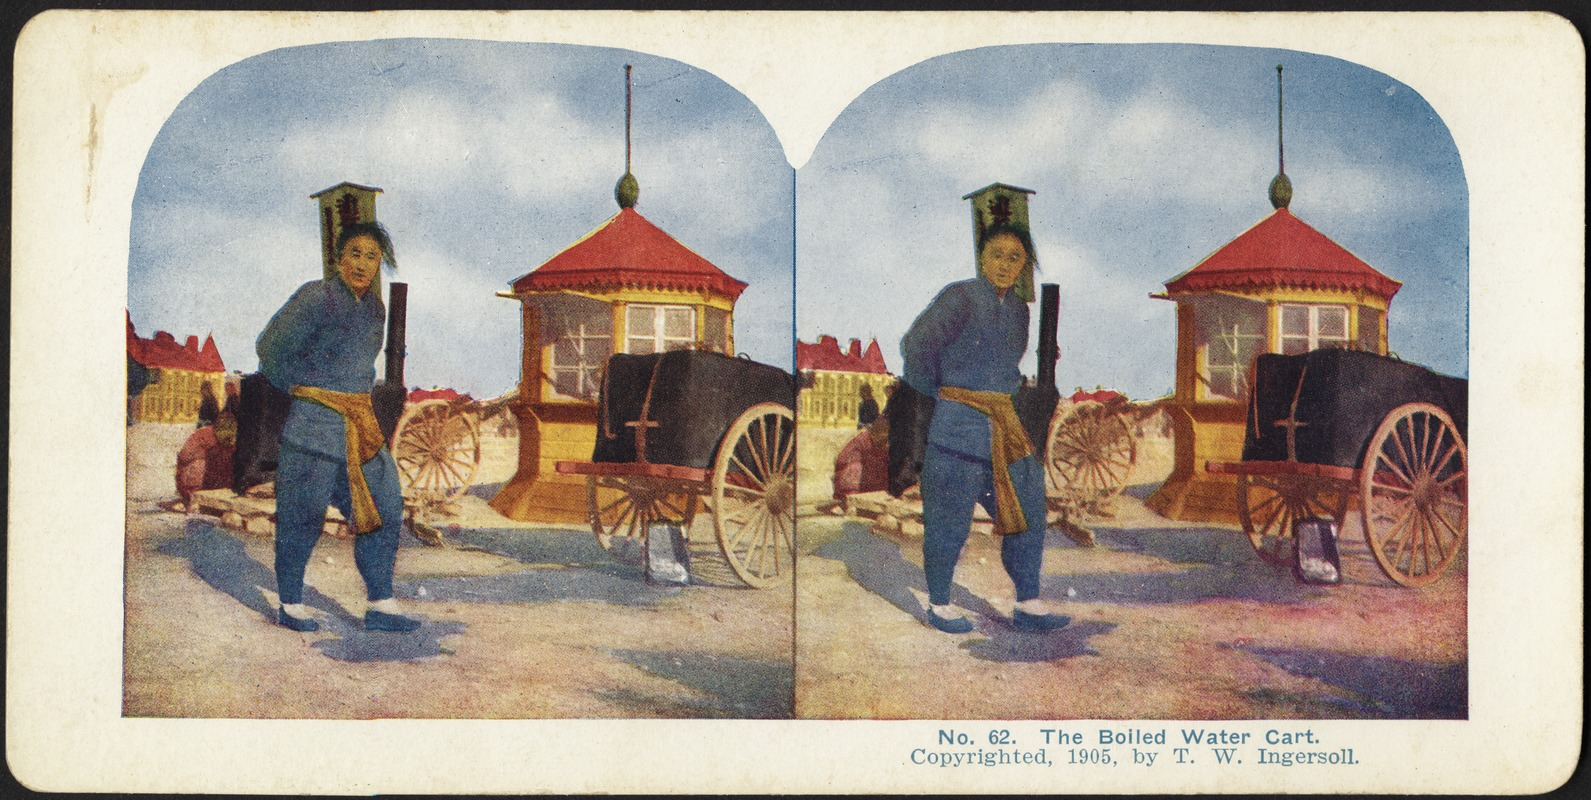 The boiled water cart